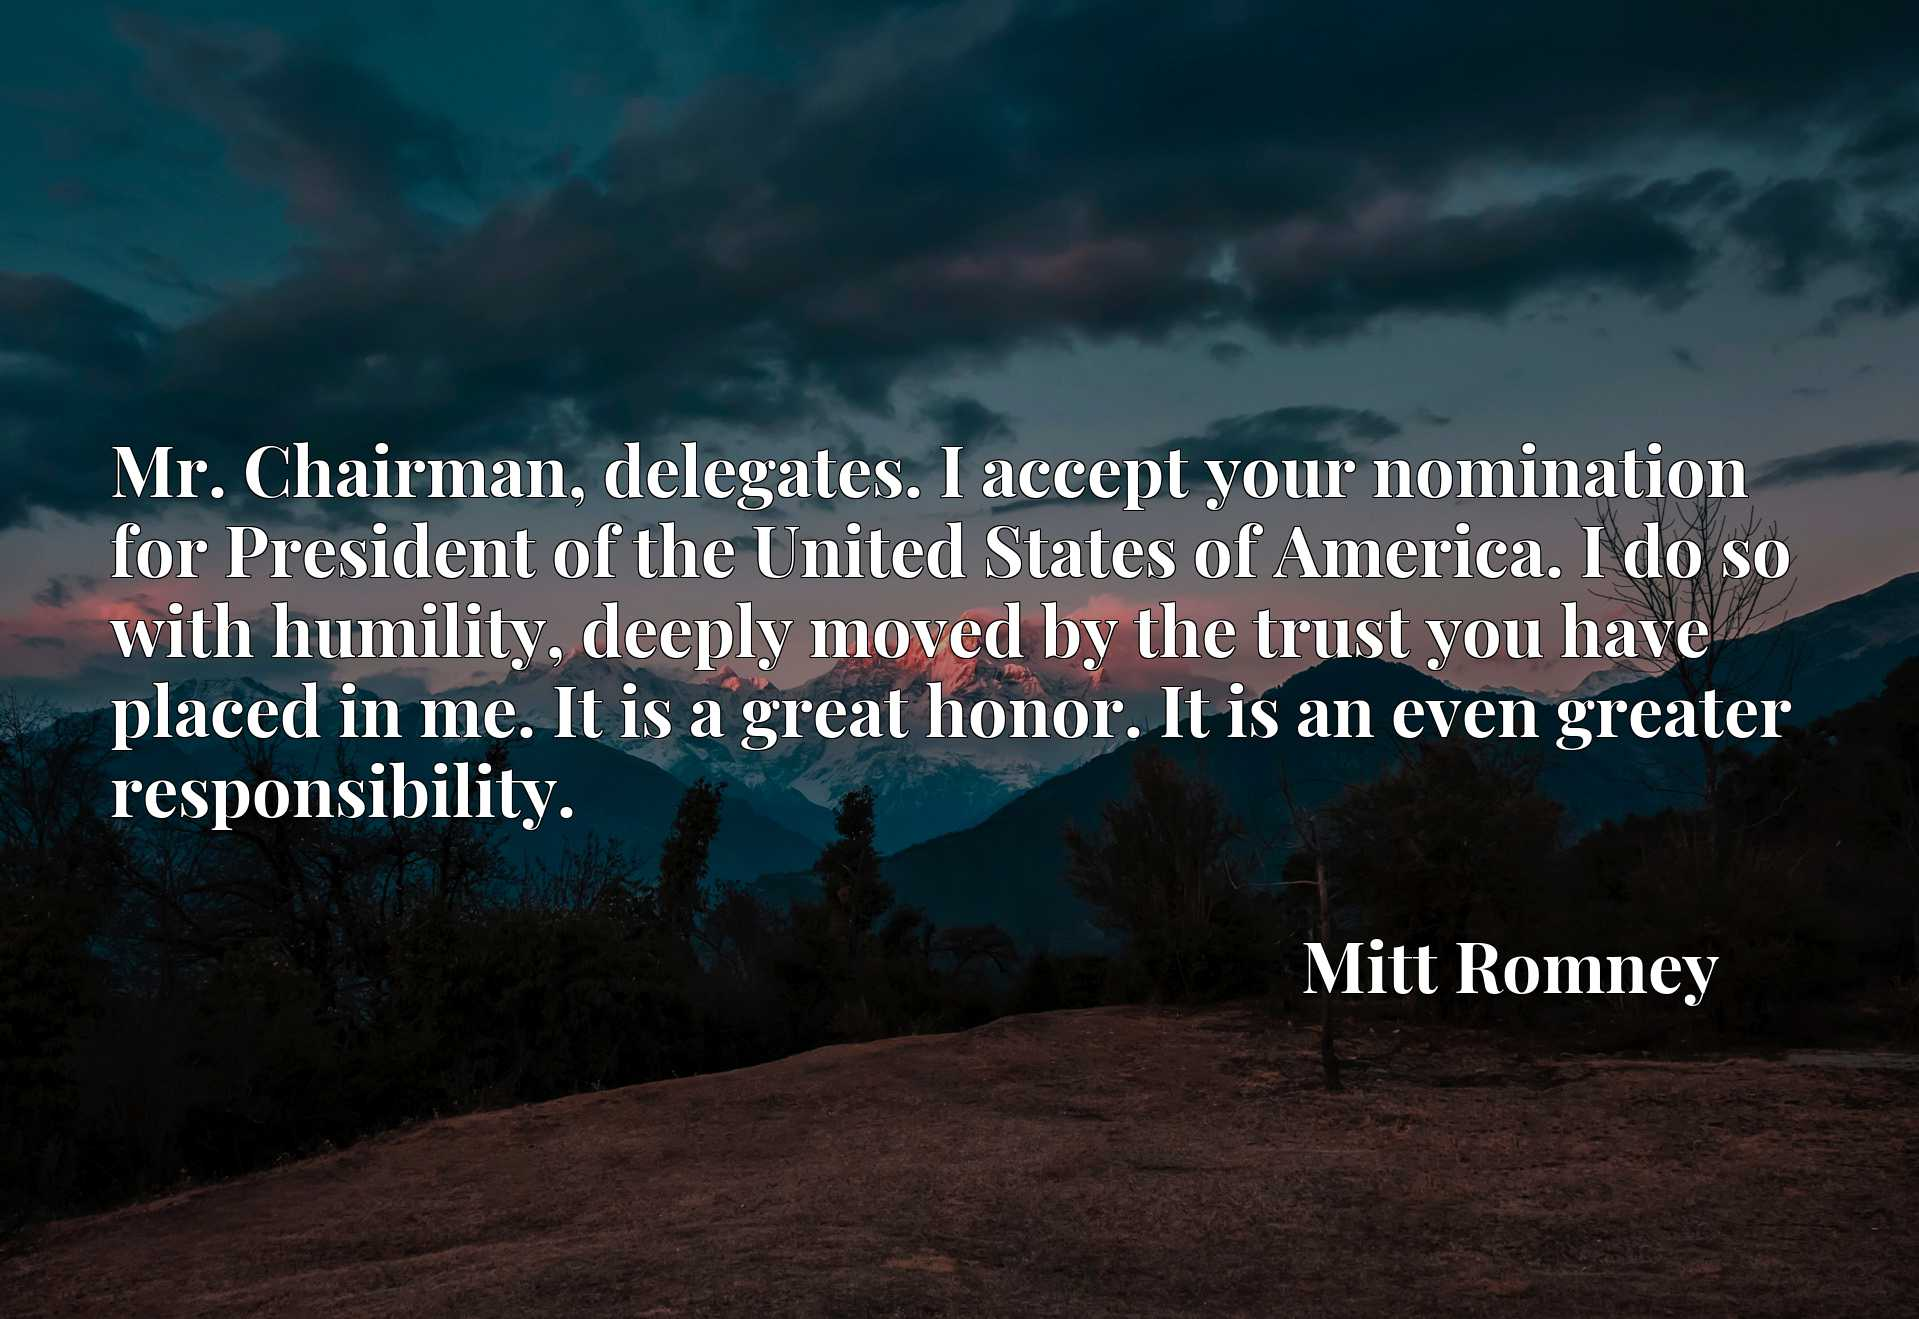 Mr. Chairman, delegates. I accept your nomination for President of the United States of America. I do so with humility, deeply moved by the trust you have placed in me. It is a great honor. It is an even greater responsibility.